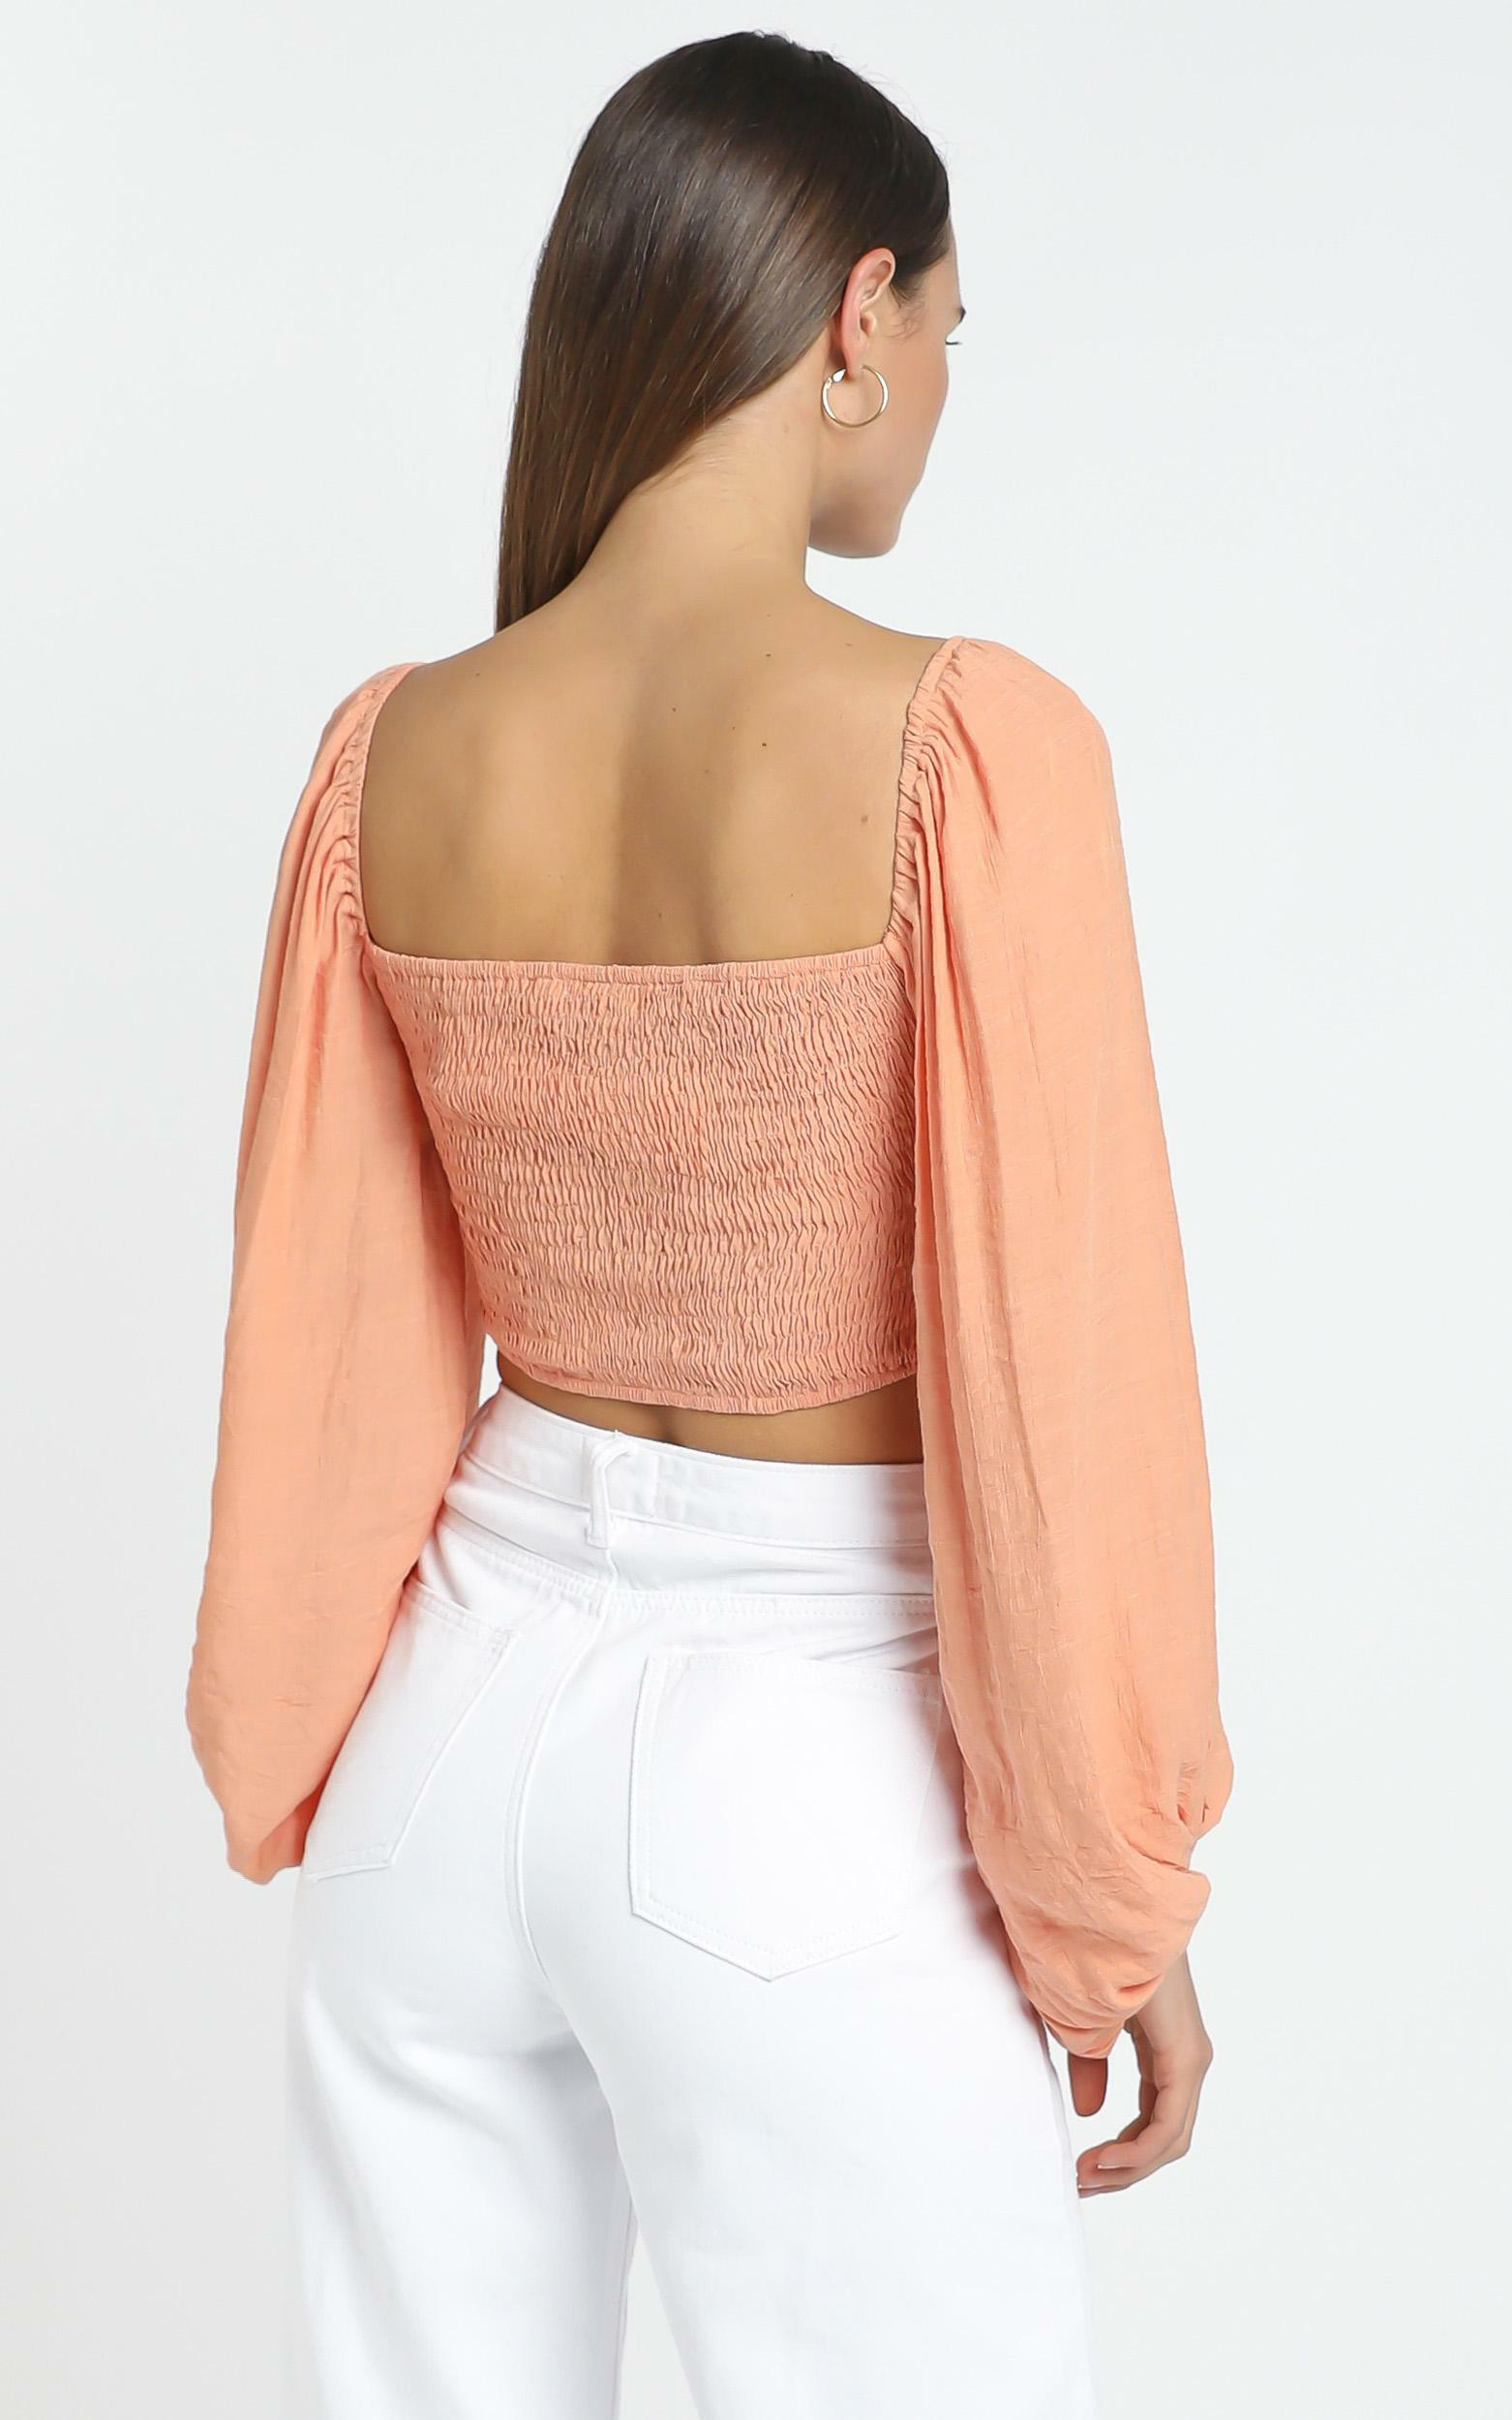 Ophelia Top in Terricotta - 12 (L), Orange, hi-res image number null